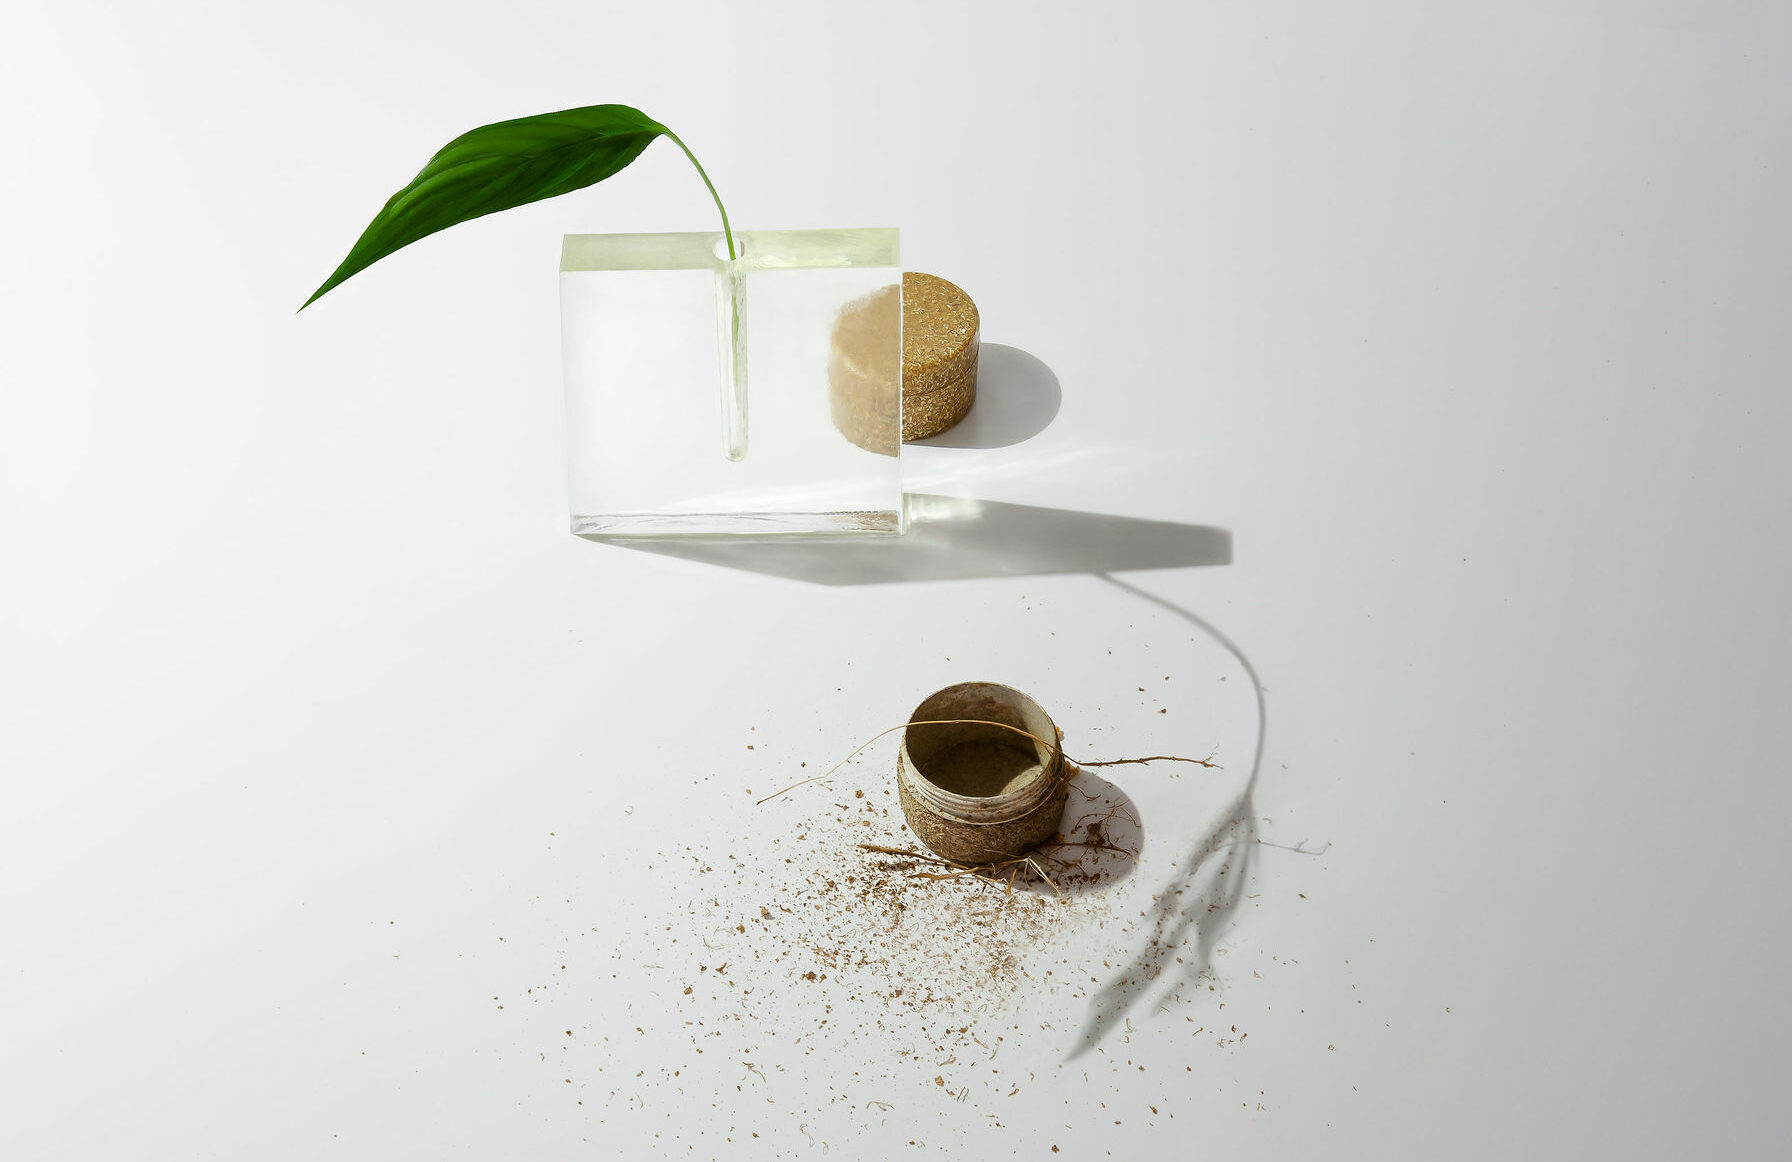 Jars for water-based cosmetics that biodegrade